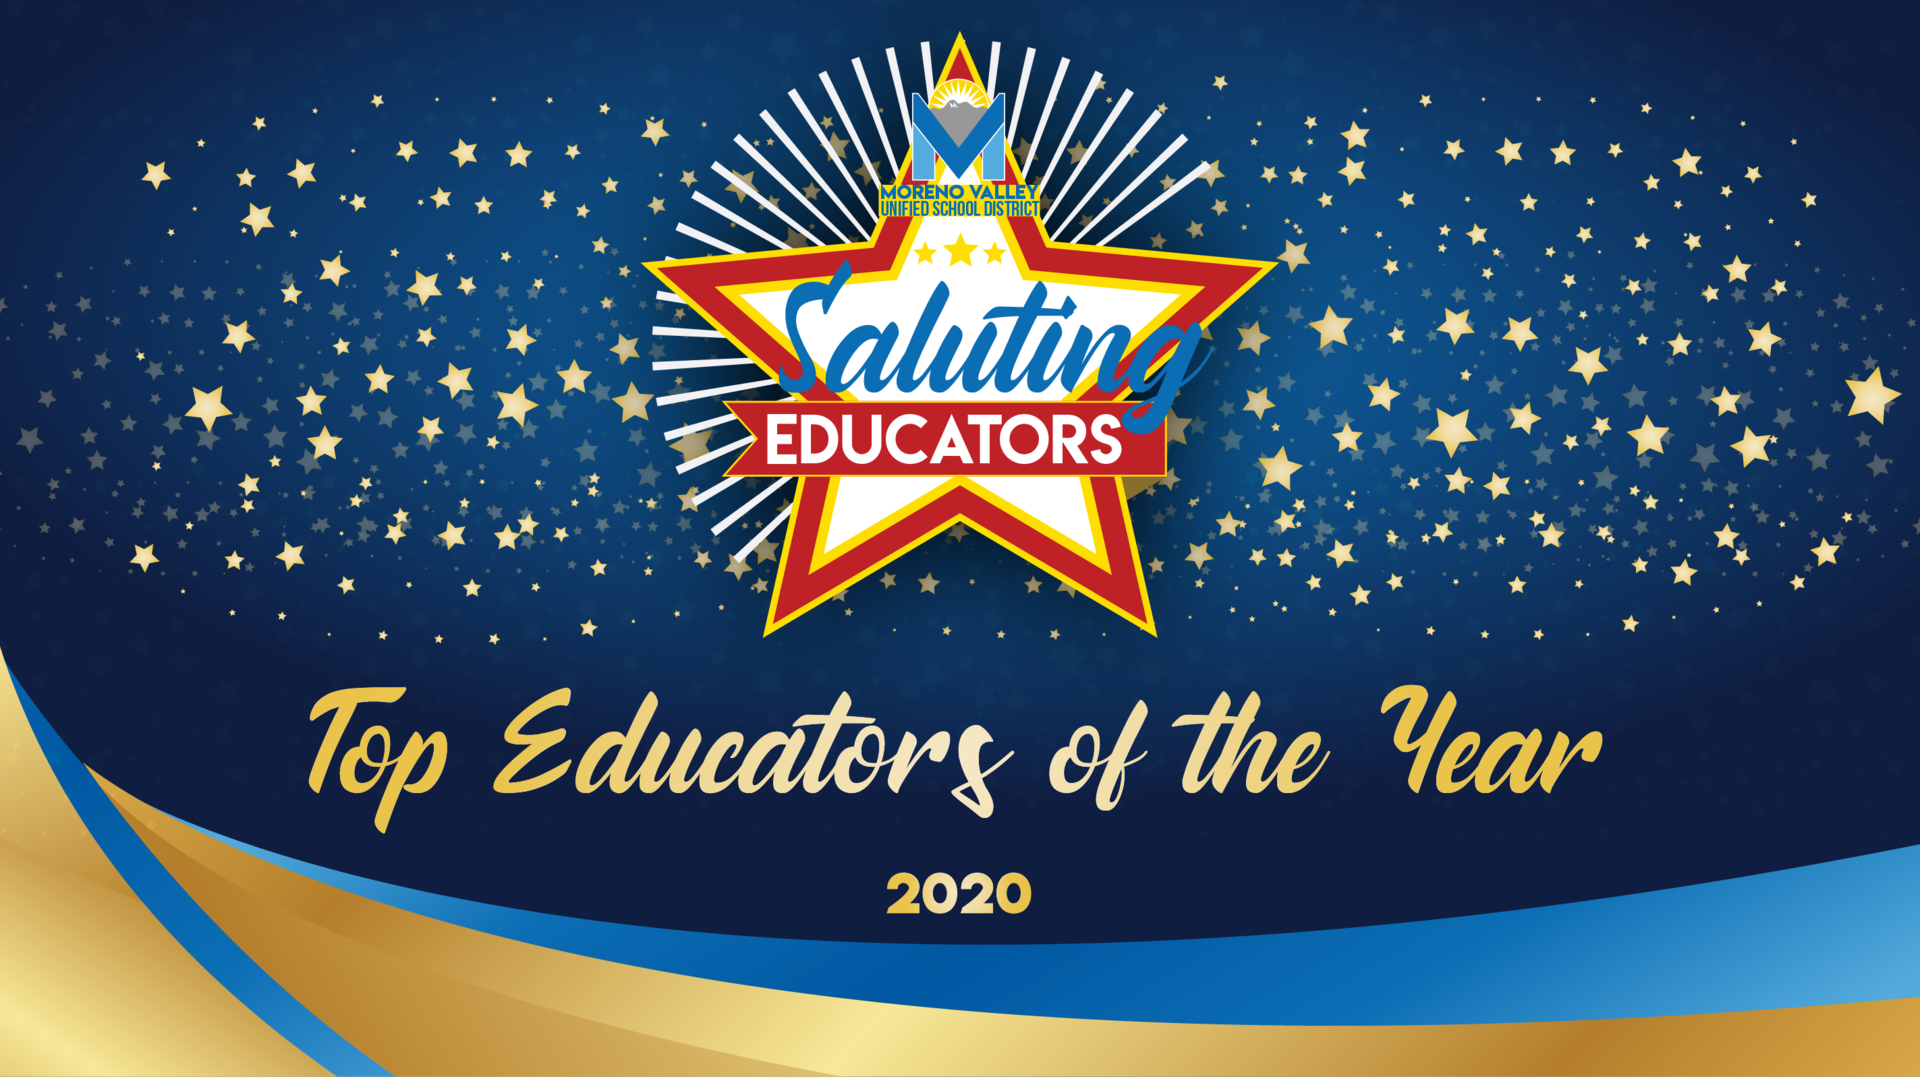 Click Here for Top Educators of the Year